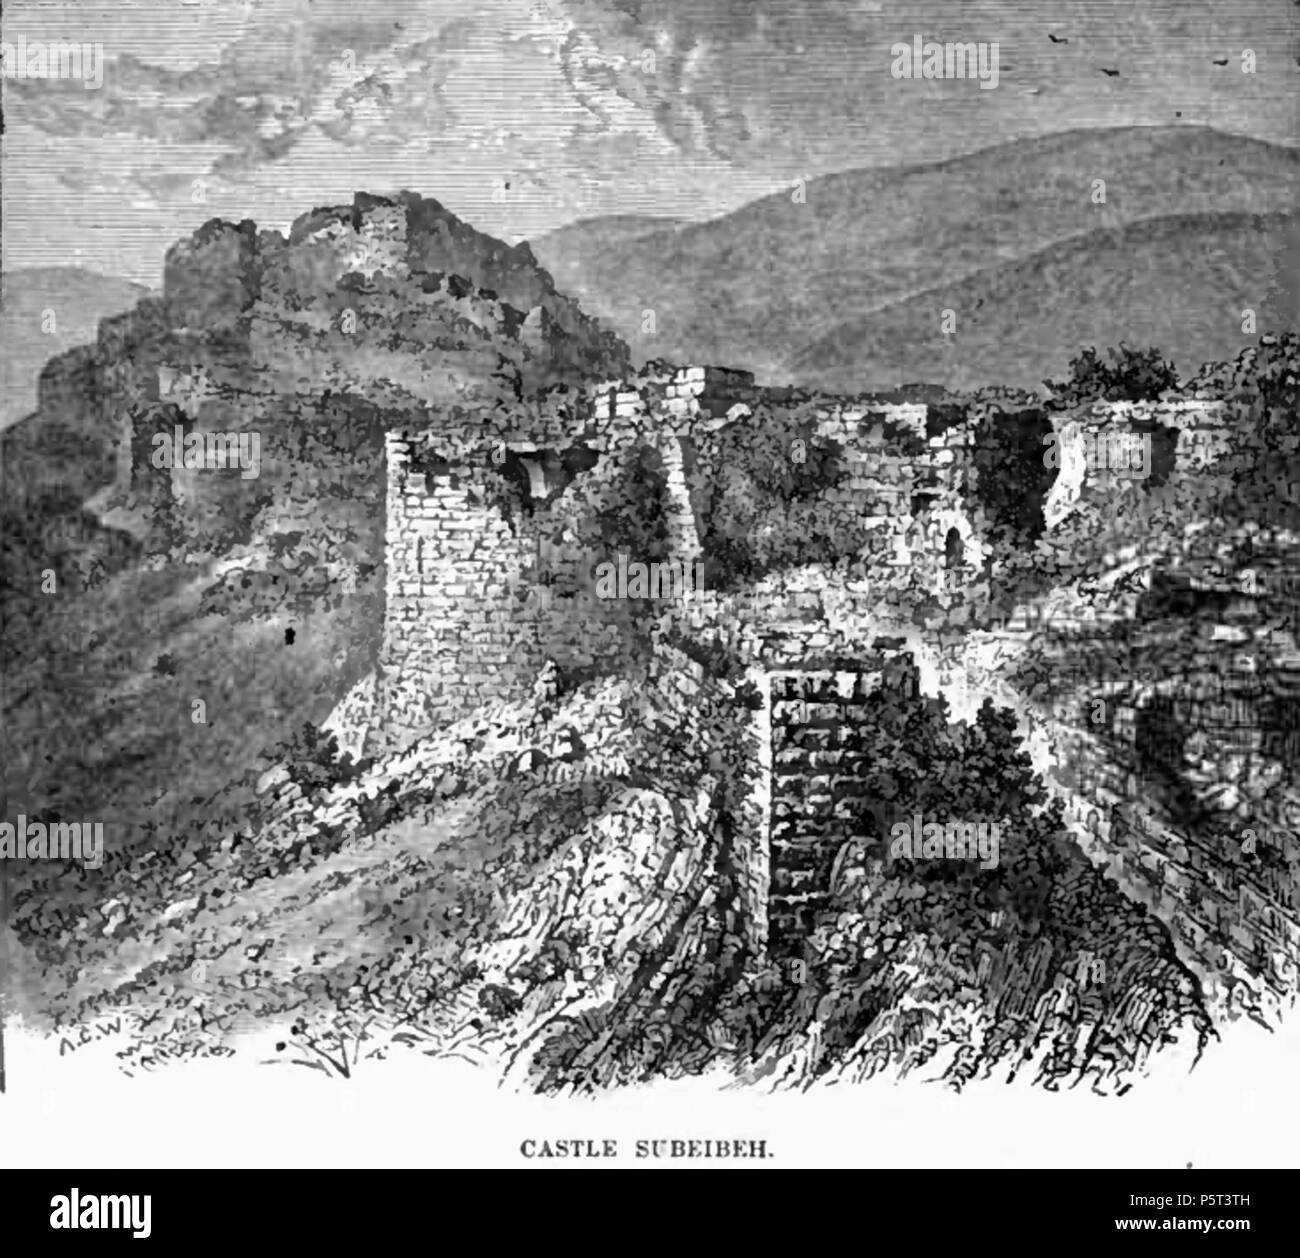 N/A. English: Nimrod Fortress. al-Subayba. Qala'at Namrud . 1887. Frank S De Hass, 281 Castle subeibeh 1887 - Stock Image